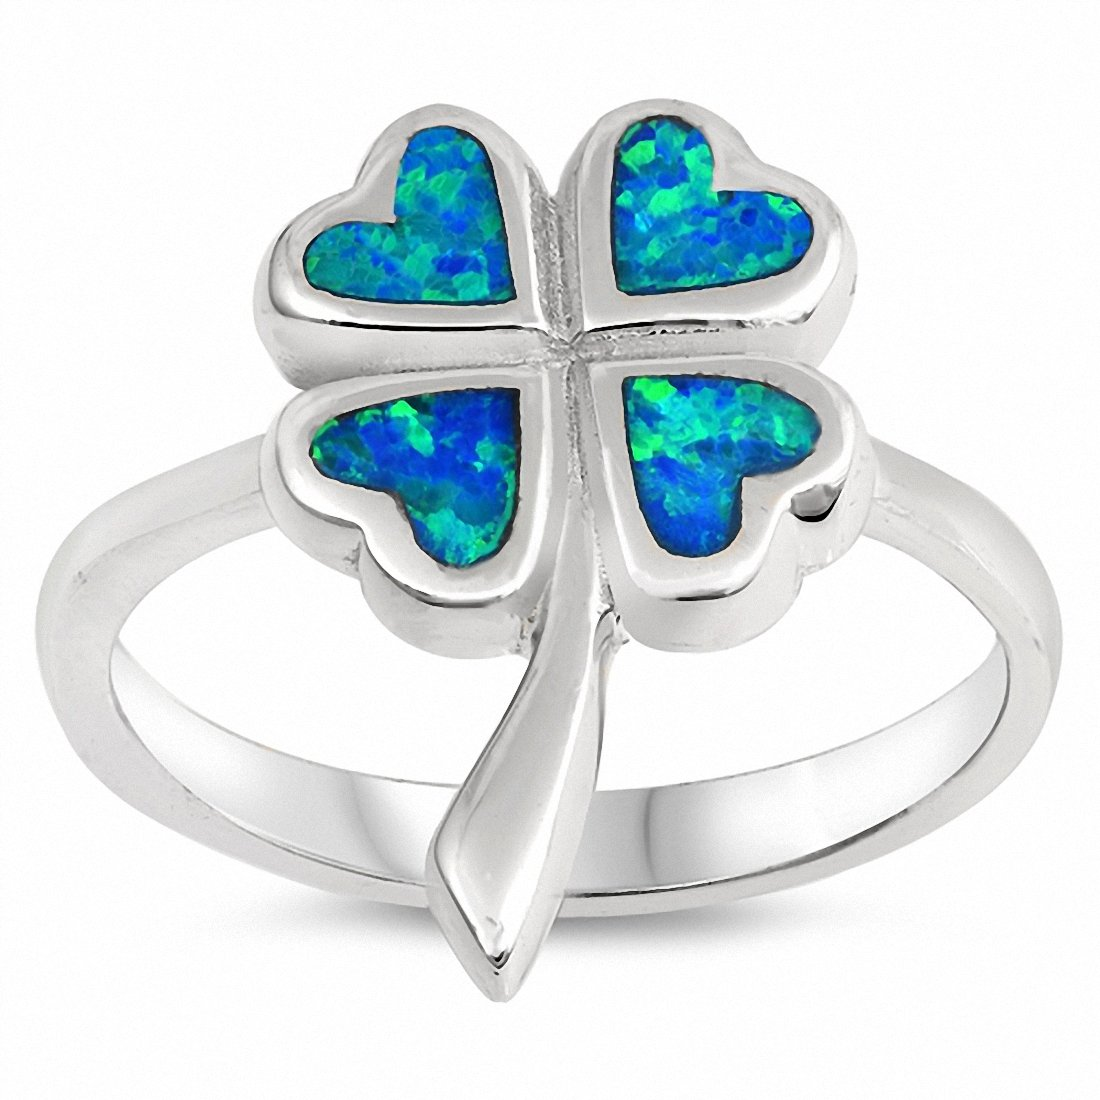 Clover Leaf Flower Ring Created Opal 925 Sterling Silver Choose Color